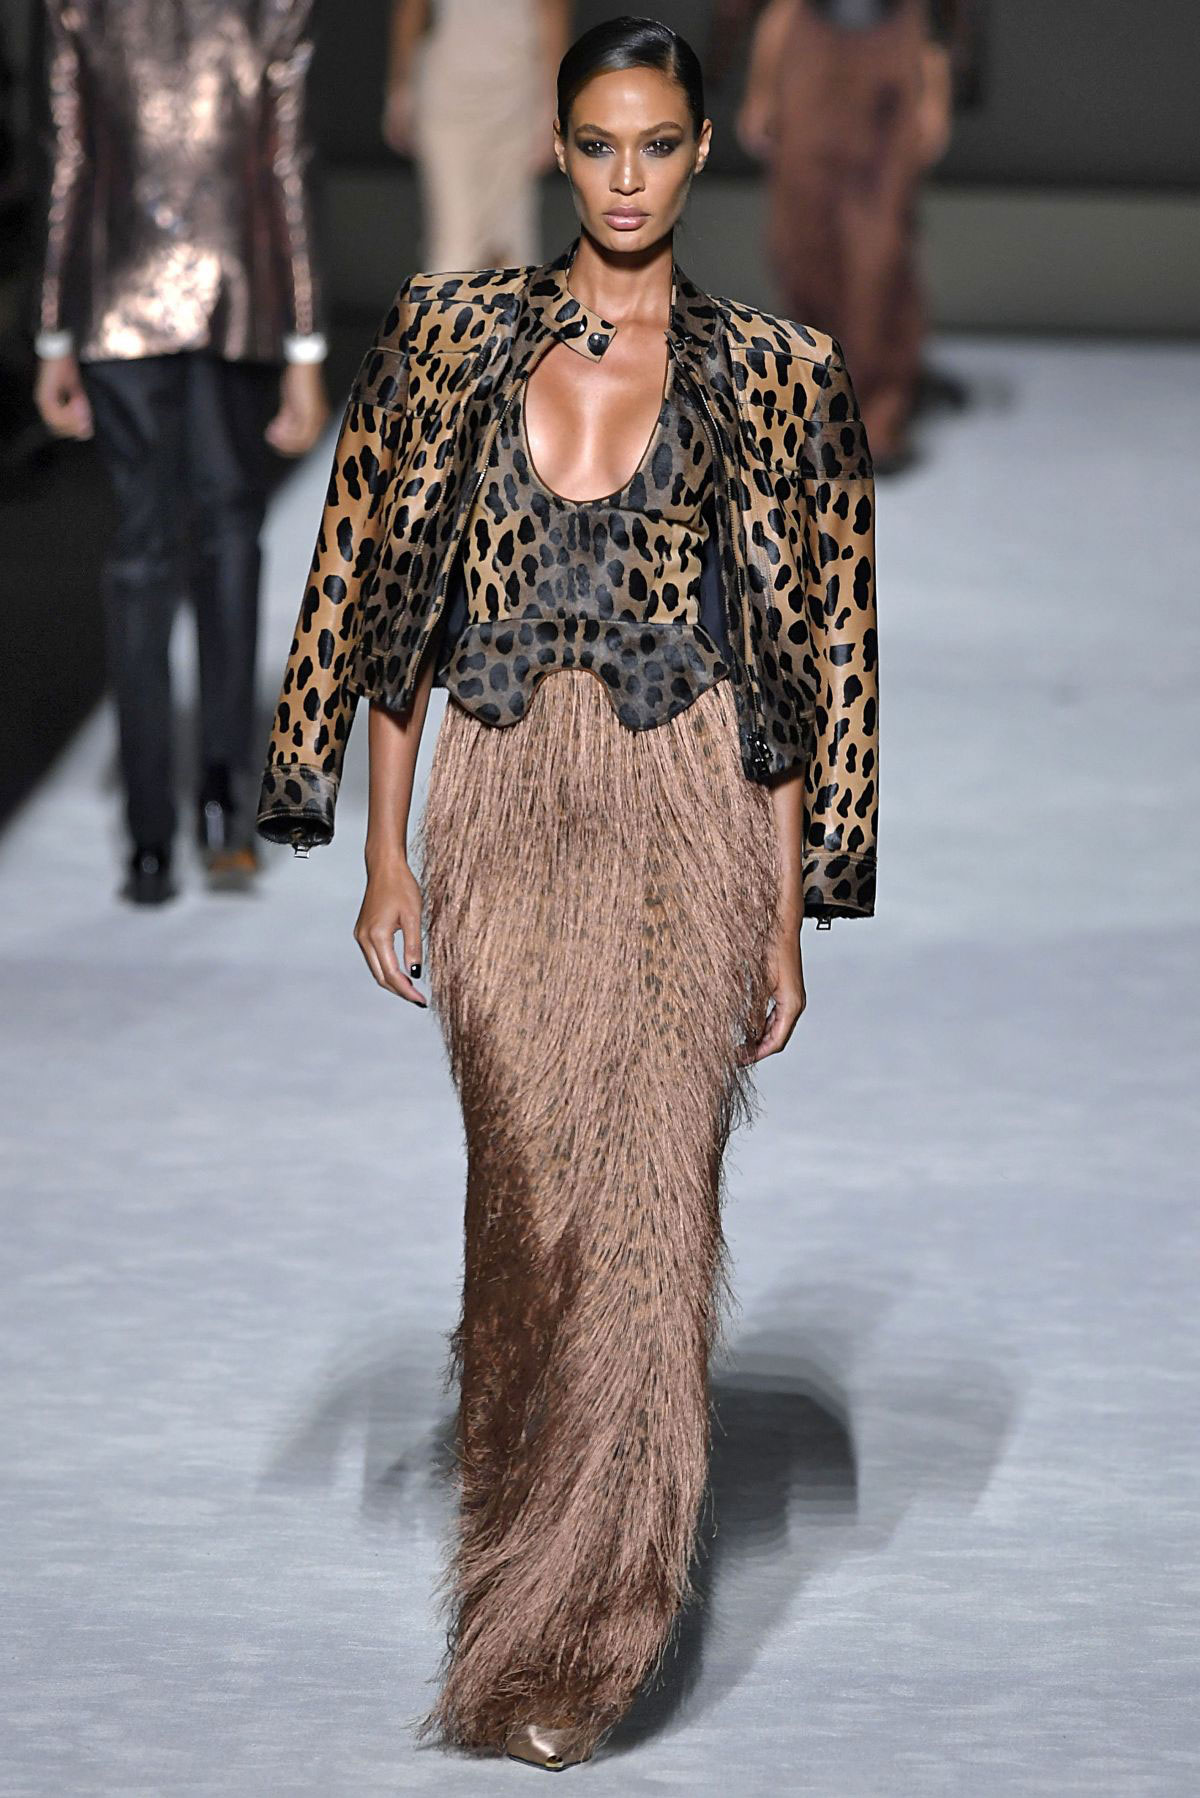 The naked runway: The most outrageous non-clothing fashion ...